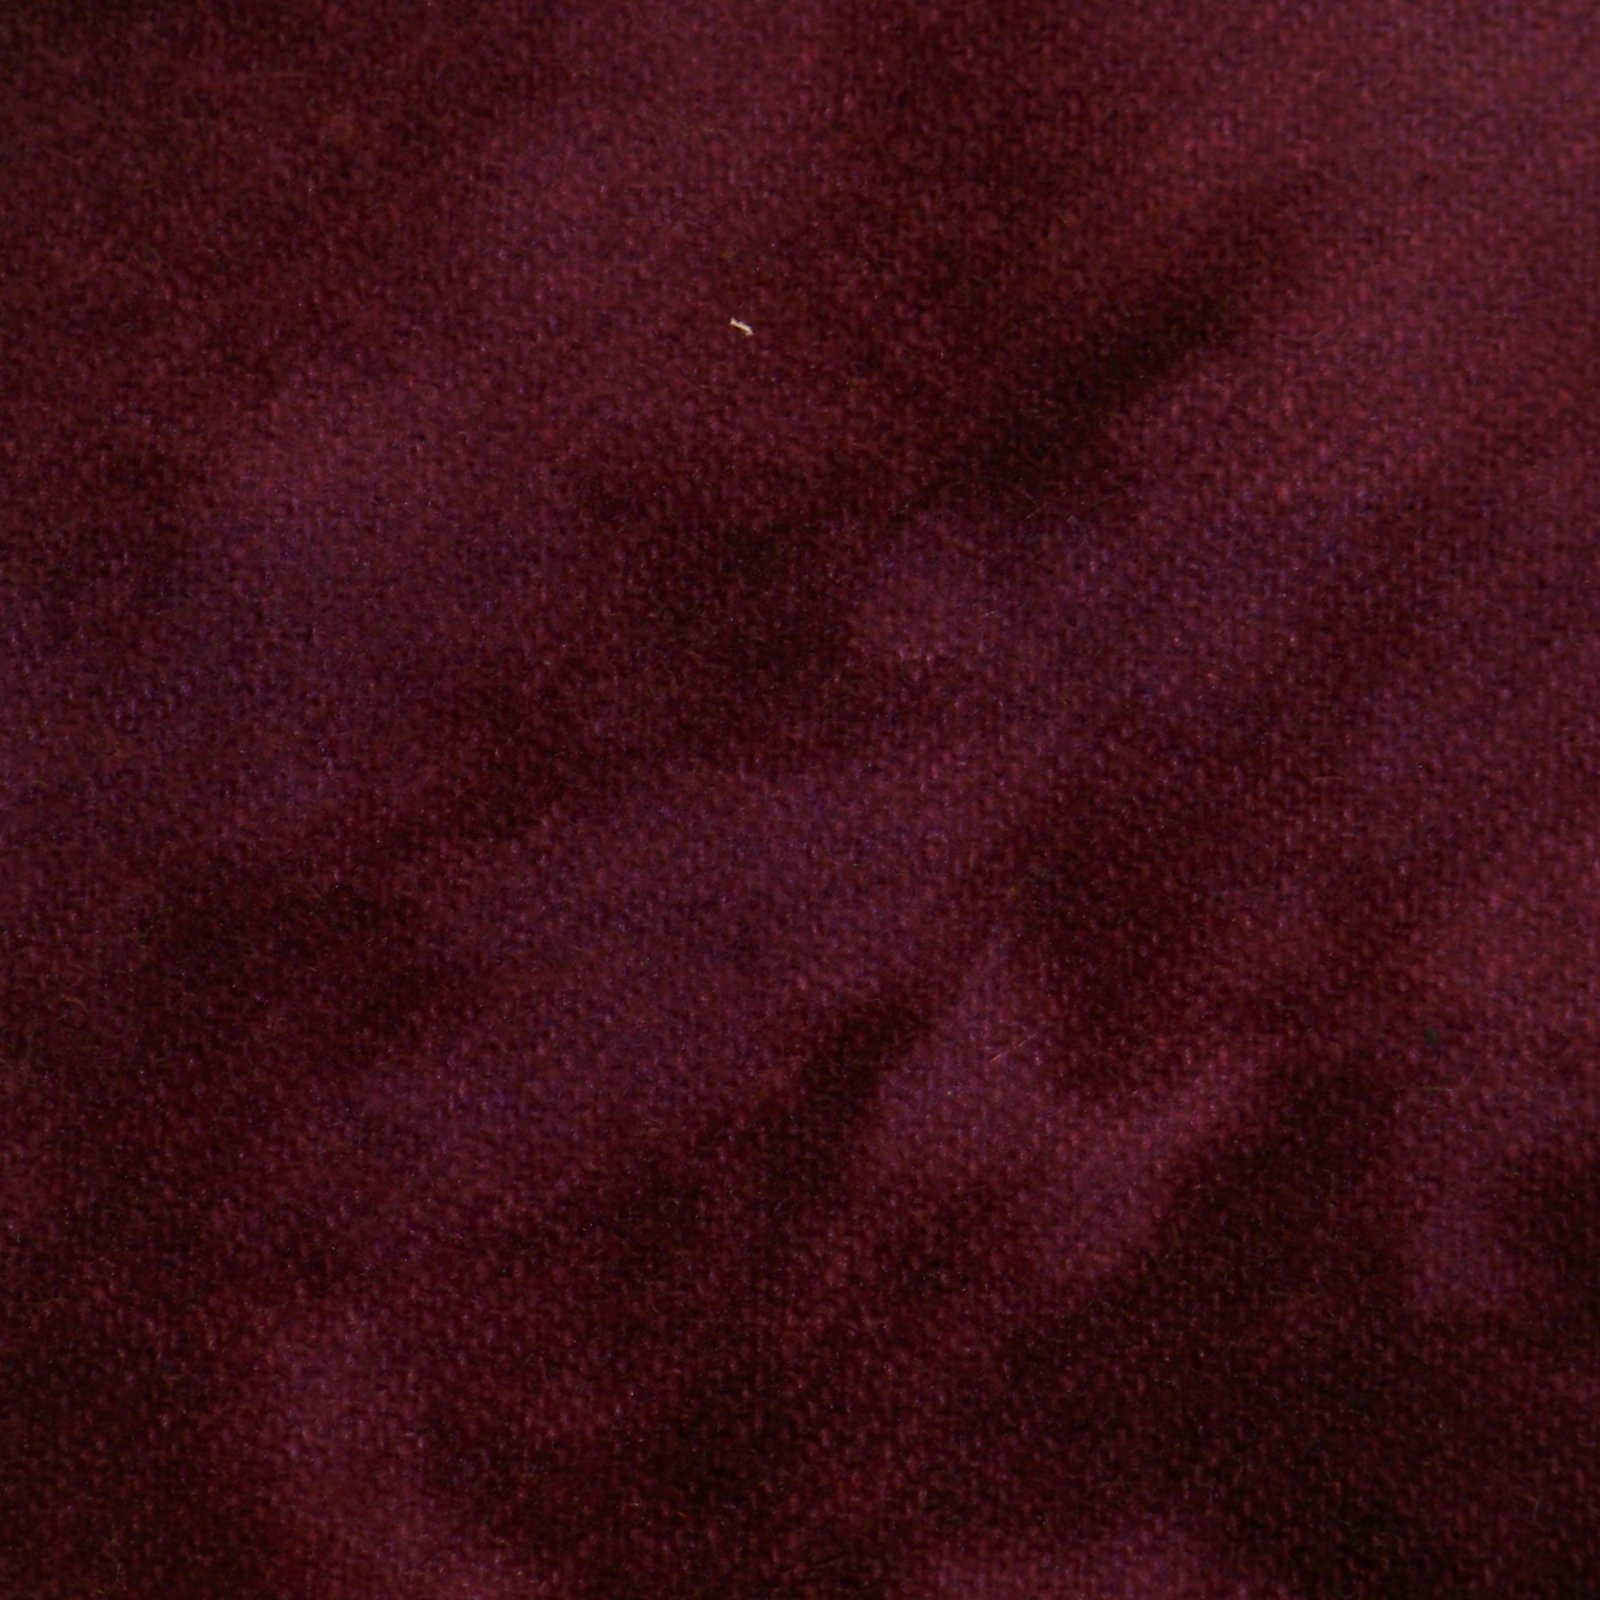 Violet Red Heather (Chubby) by In the Patch Designs